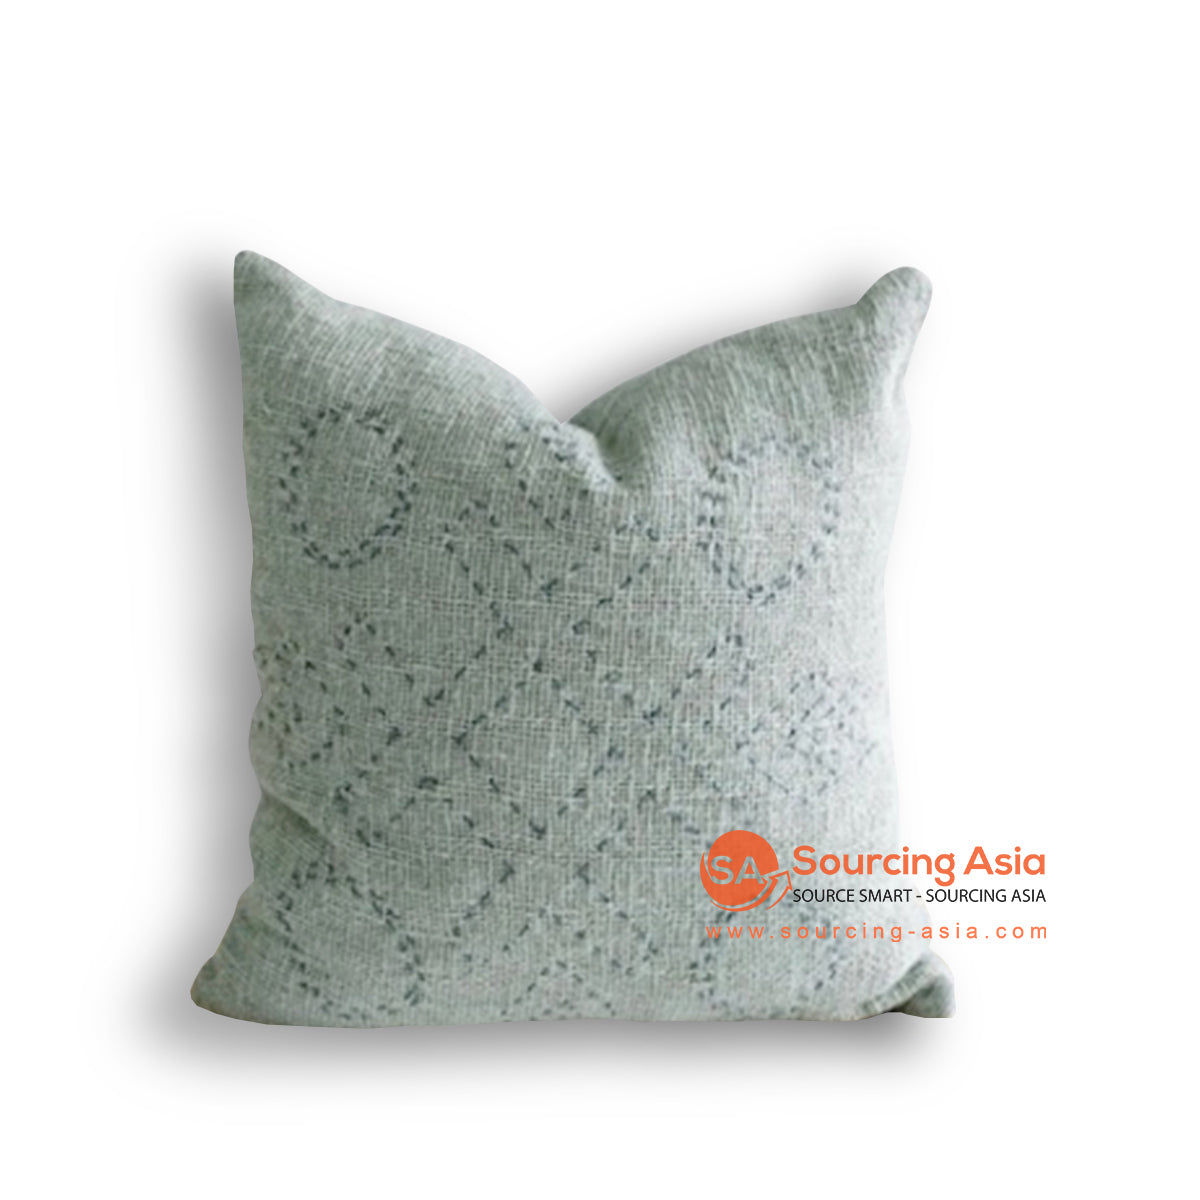 HIP023-1 HAND STITCHED COVER PILLOW WITH EMBROIDERY 50 X 50 CM